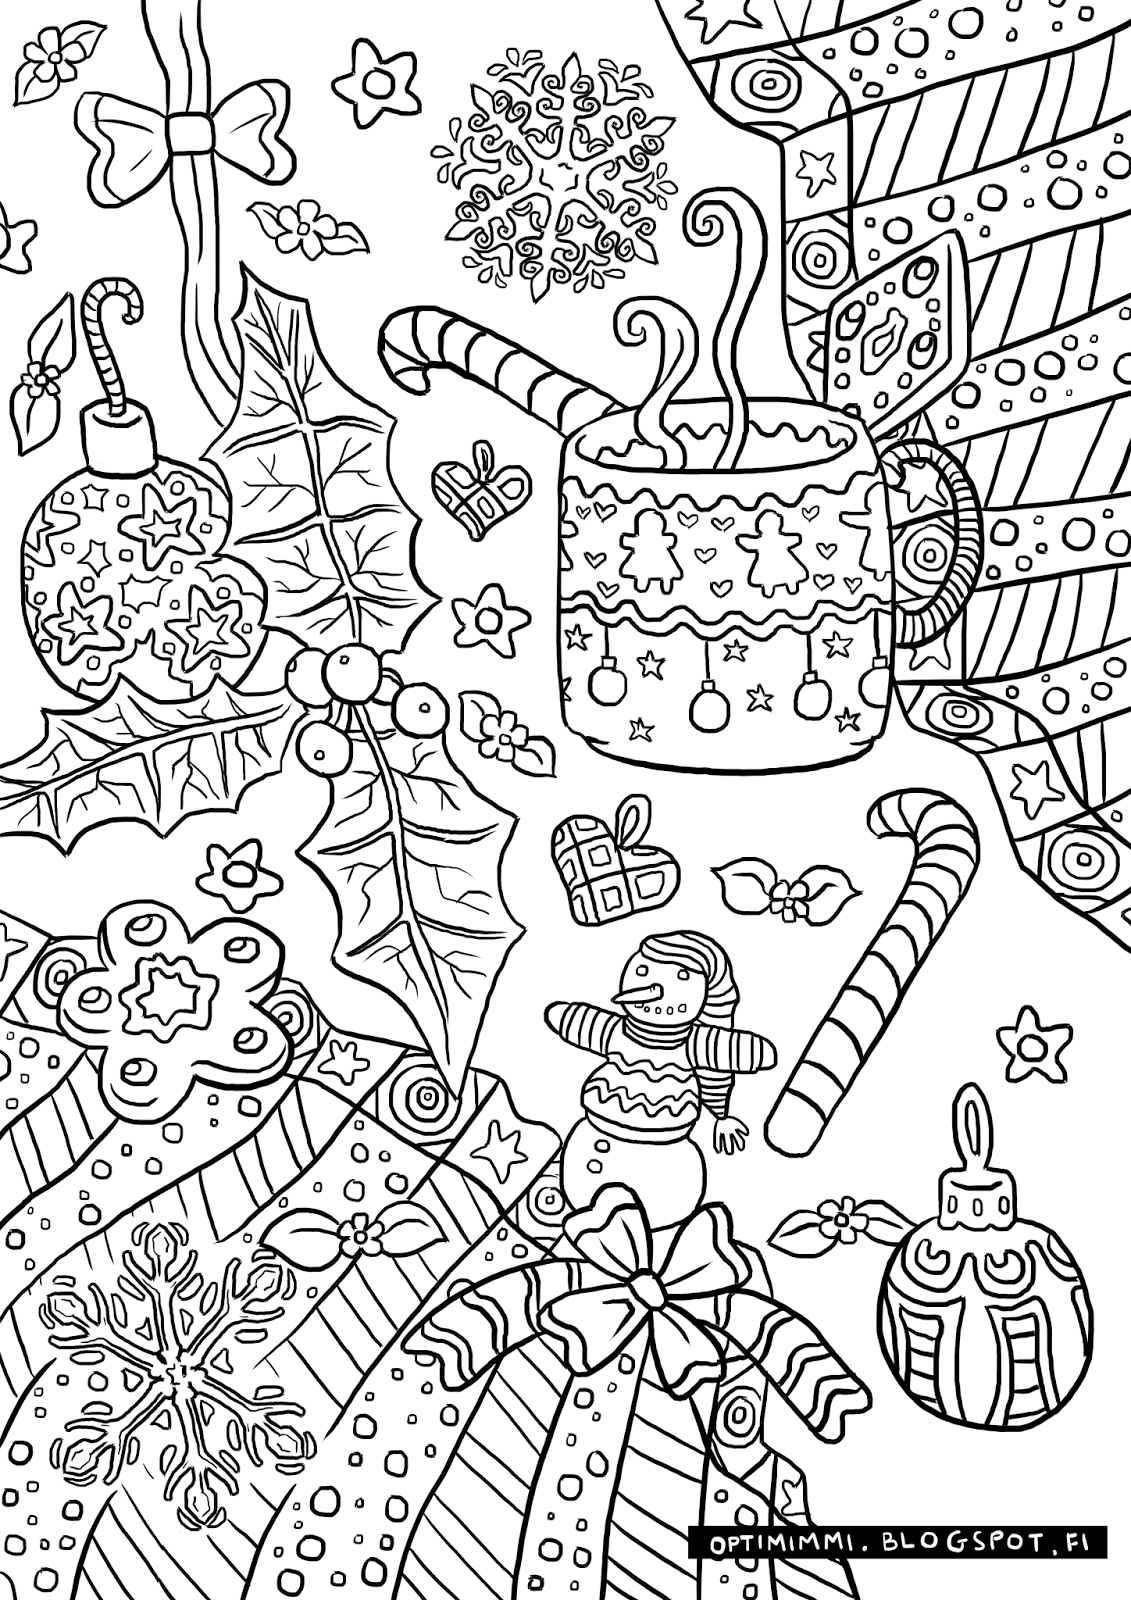 coloring pages with colors - photo#50